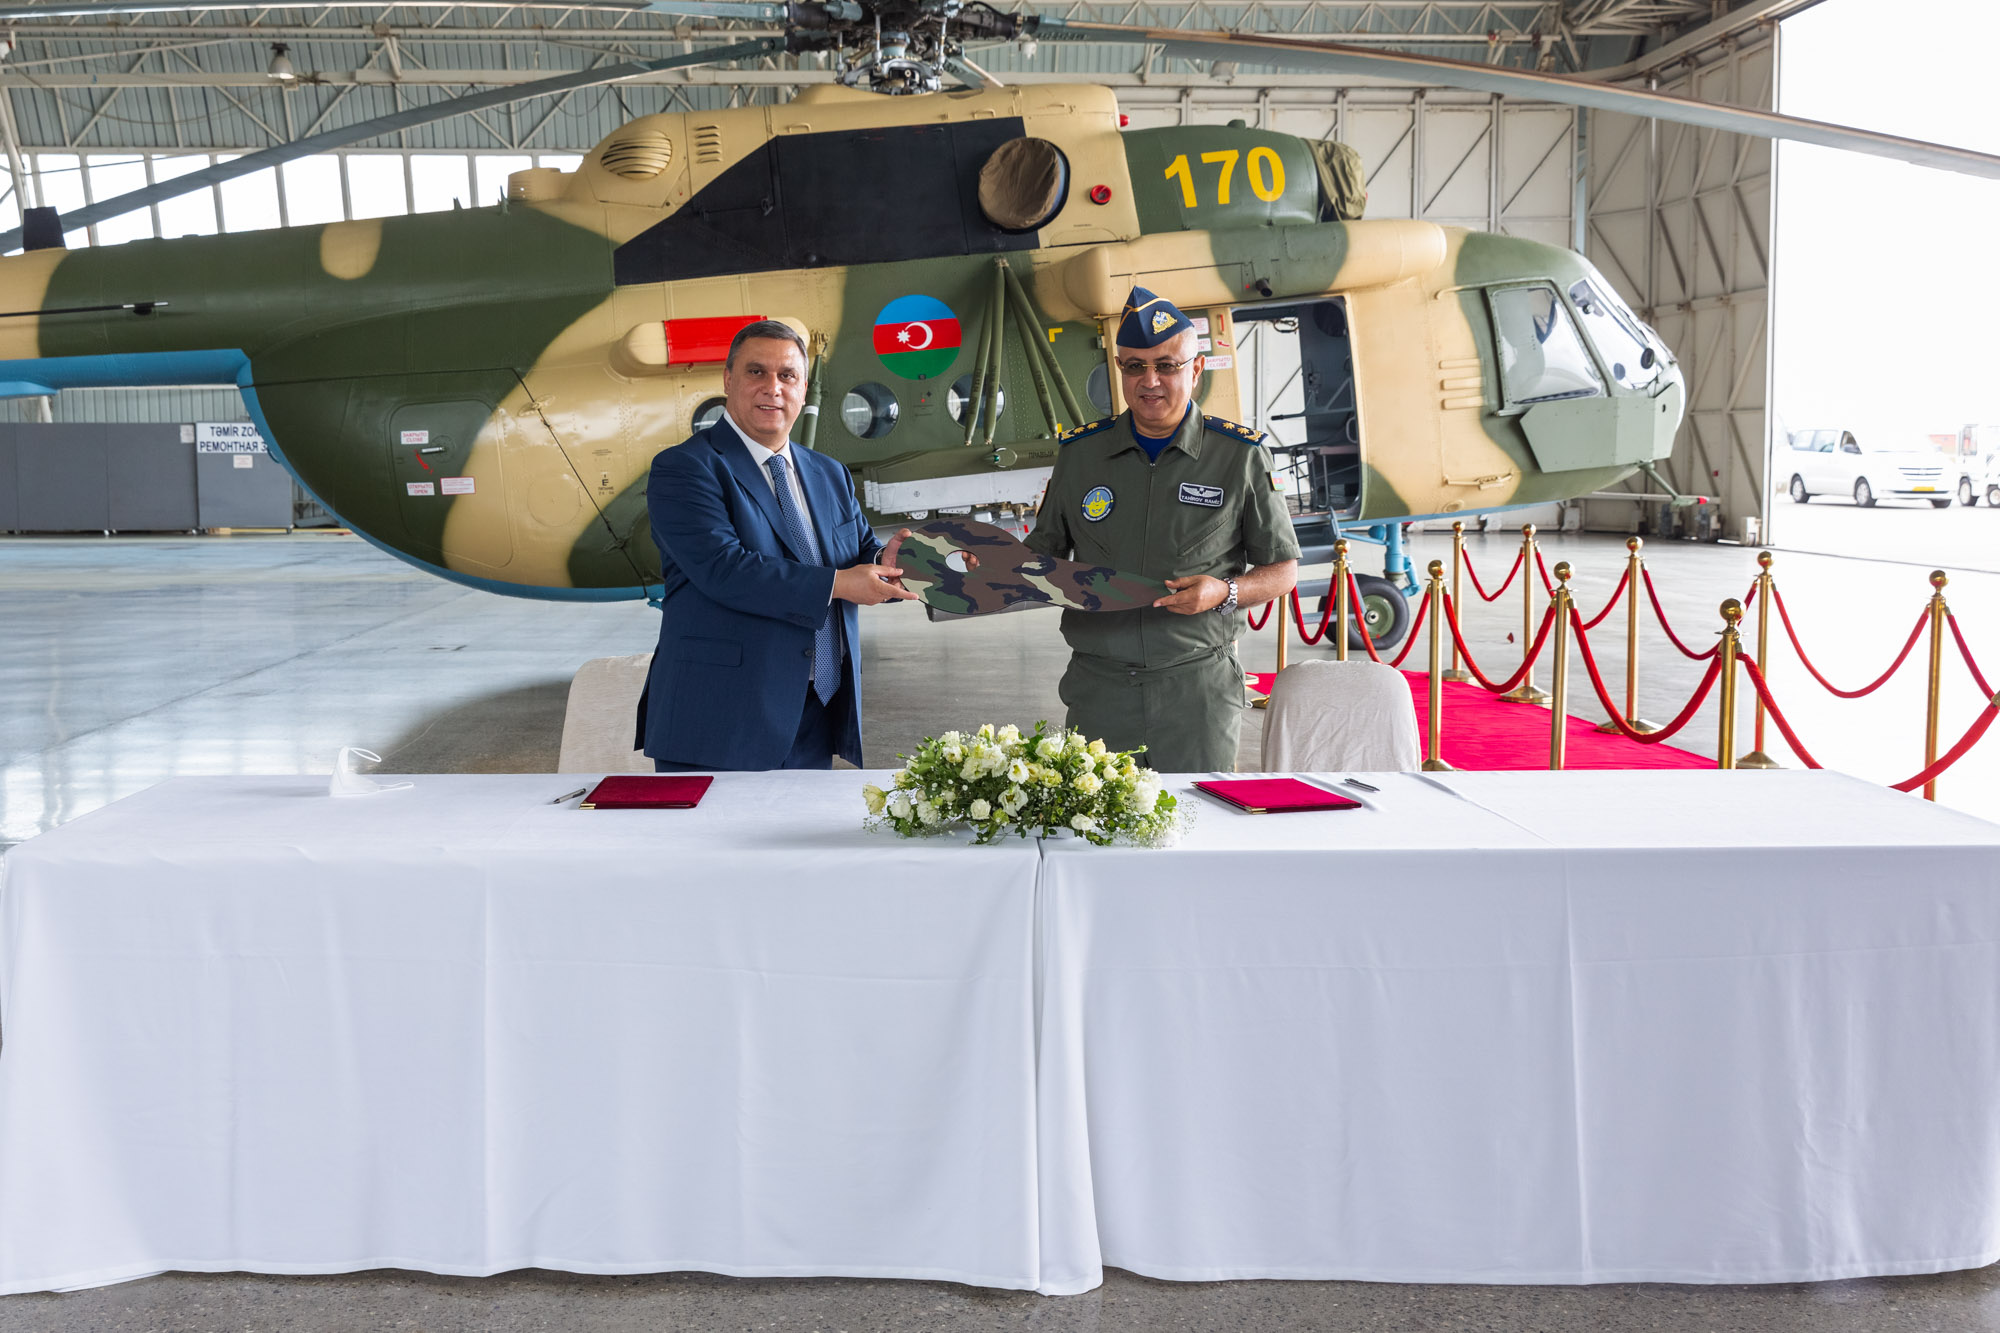 The Overhaul of Another Helicopter Completed in Azerbaijan